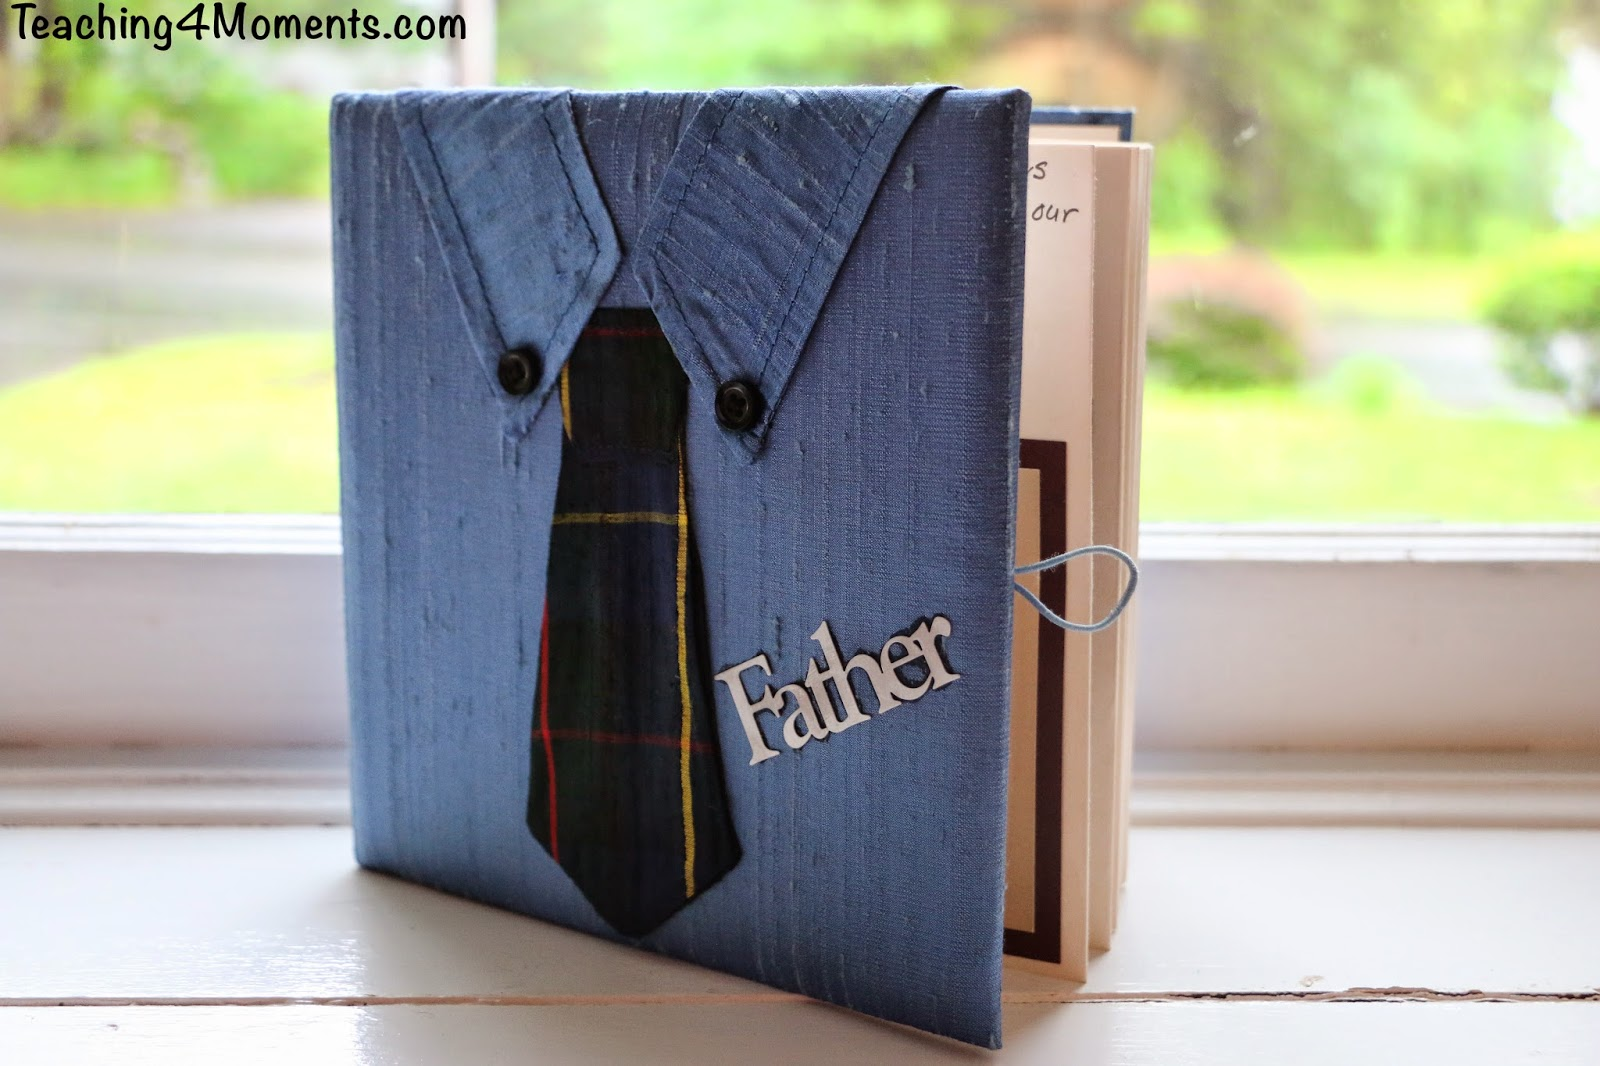 Teaching 4 Moments-Father's Day memories